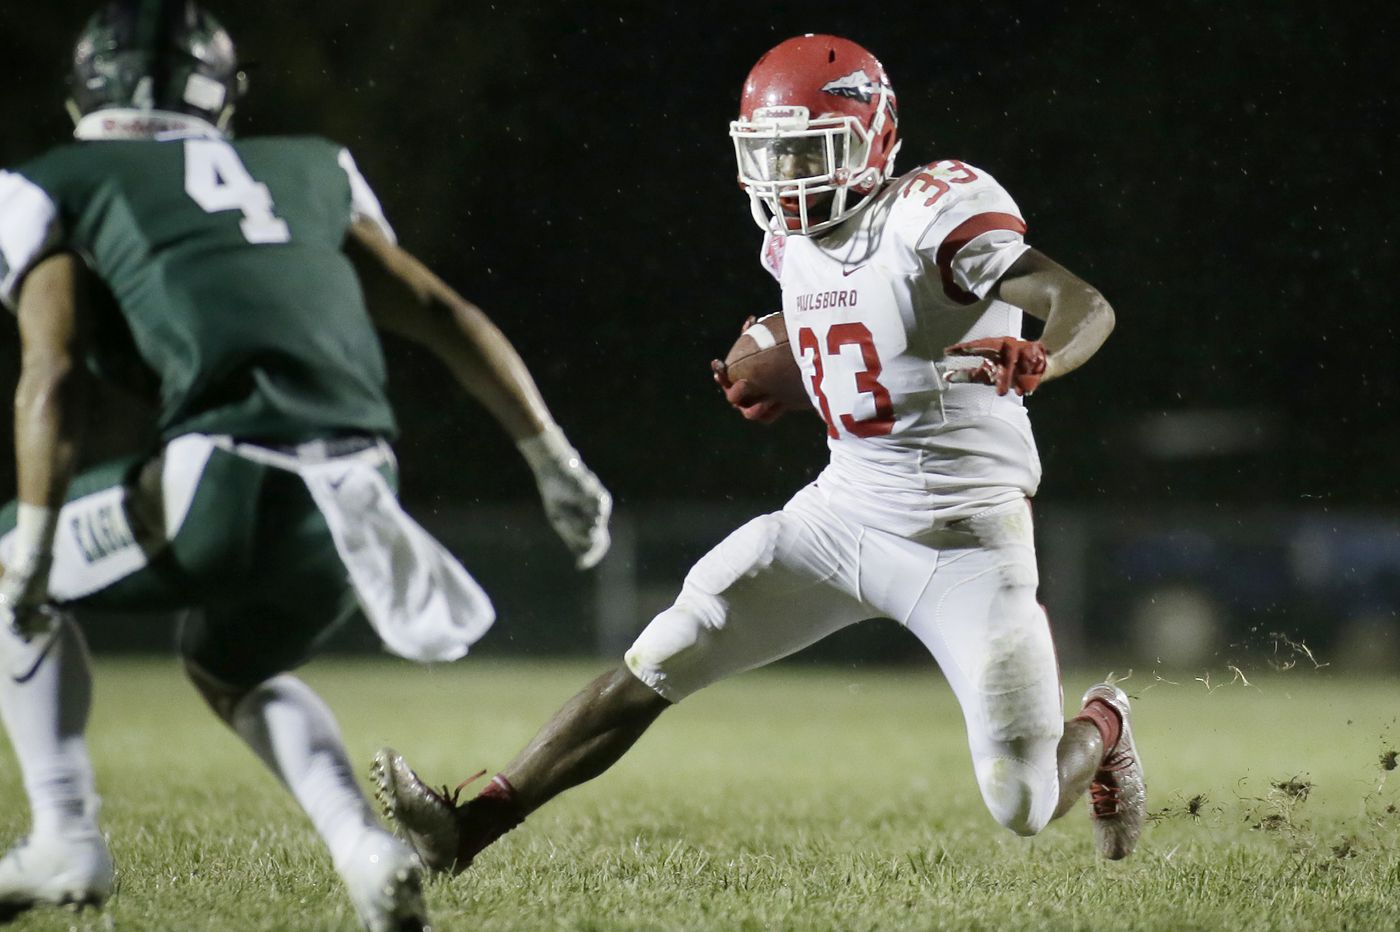 Saturday's South Jersey roundup: Nasir Robinson and Bhayshul Tuten combine for 487 rushing yards in Penns Grove's 42-26 win over Paulsboro